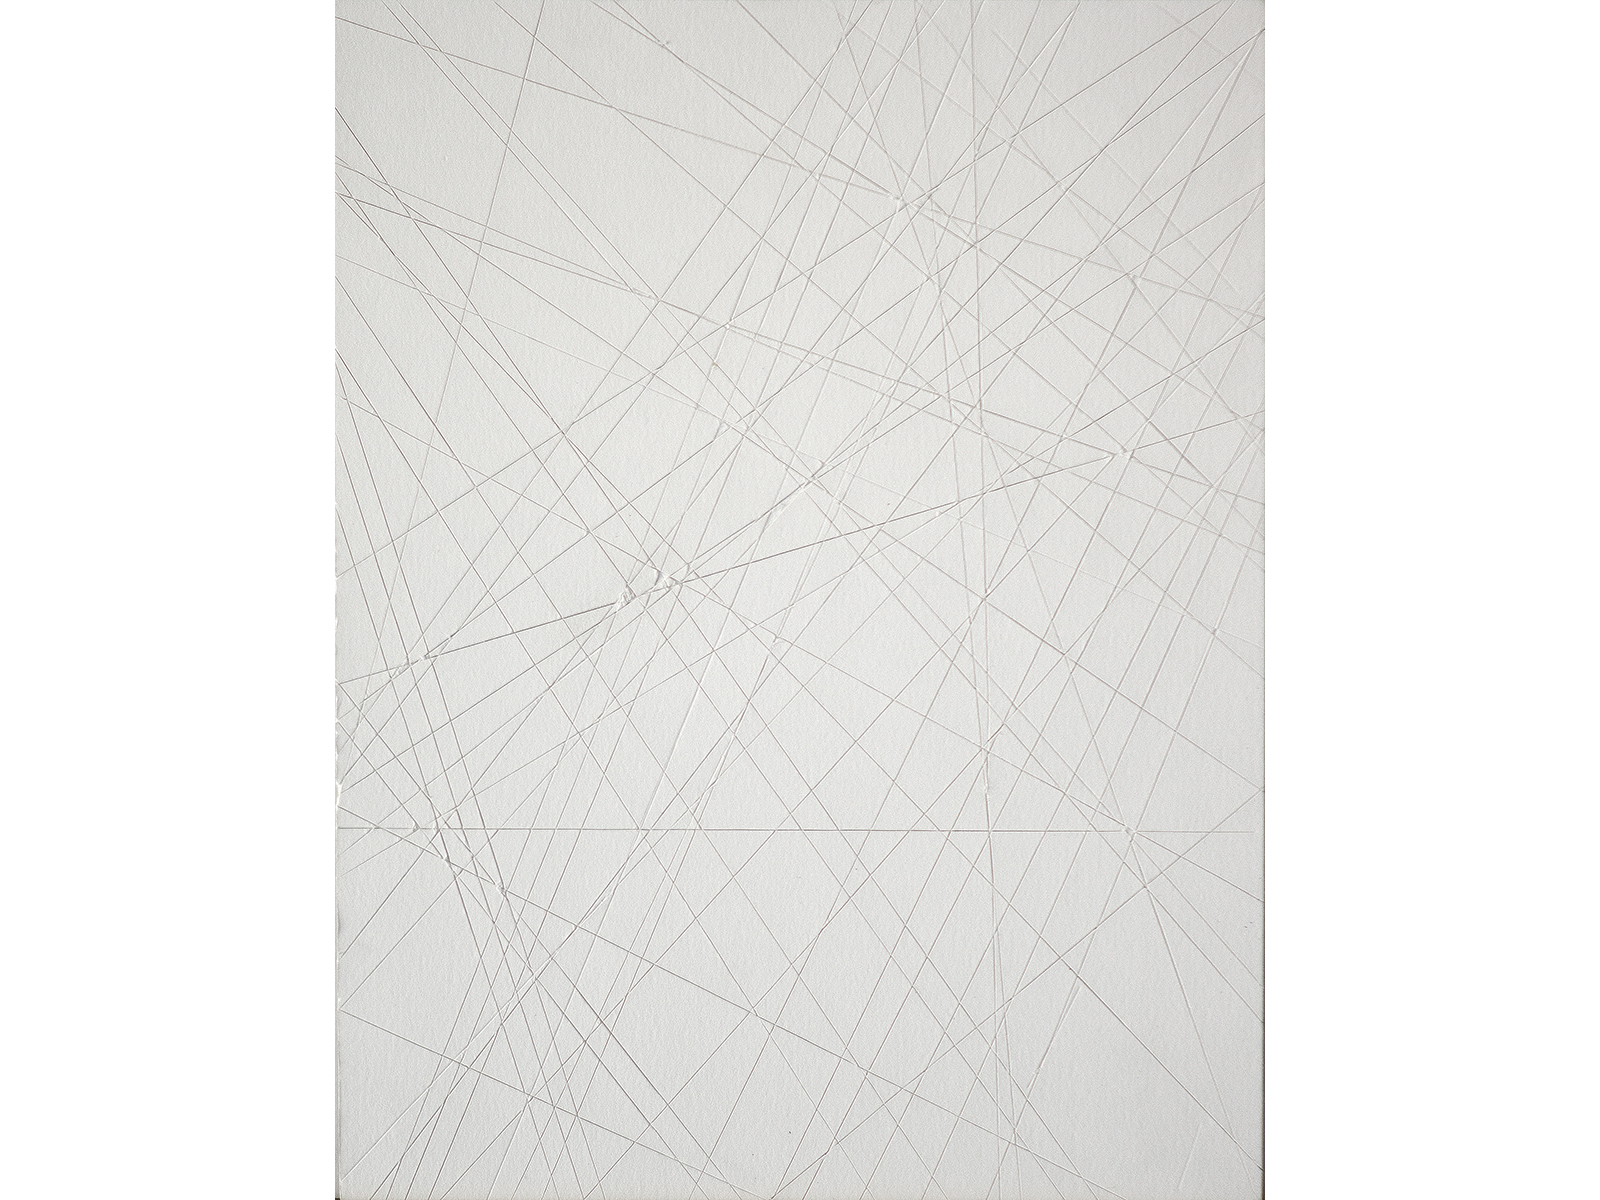 Benoit-Delaunay-artiste-installations-2013-A Set of Valuable Skills-dessins-indices-05